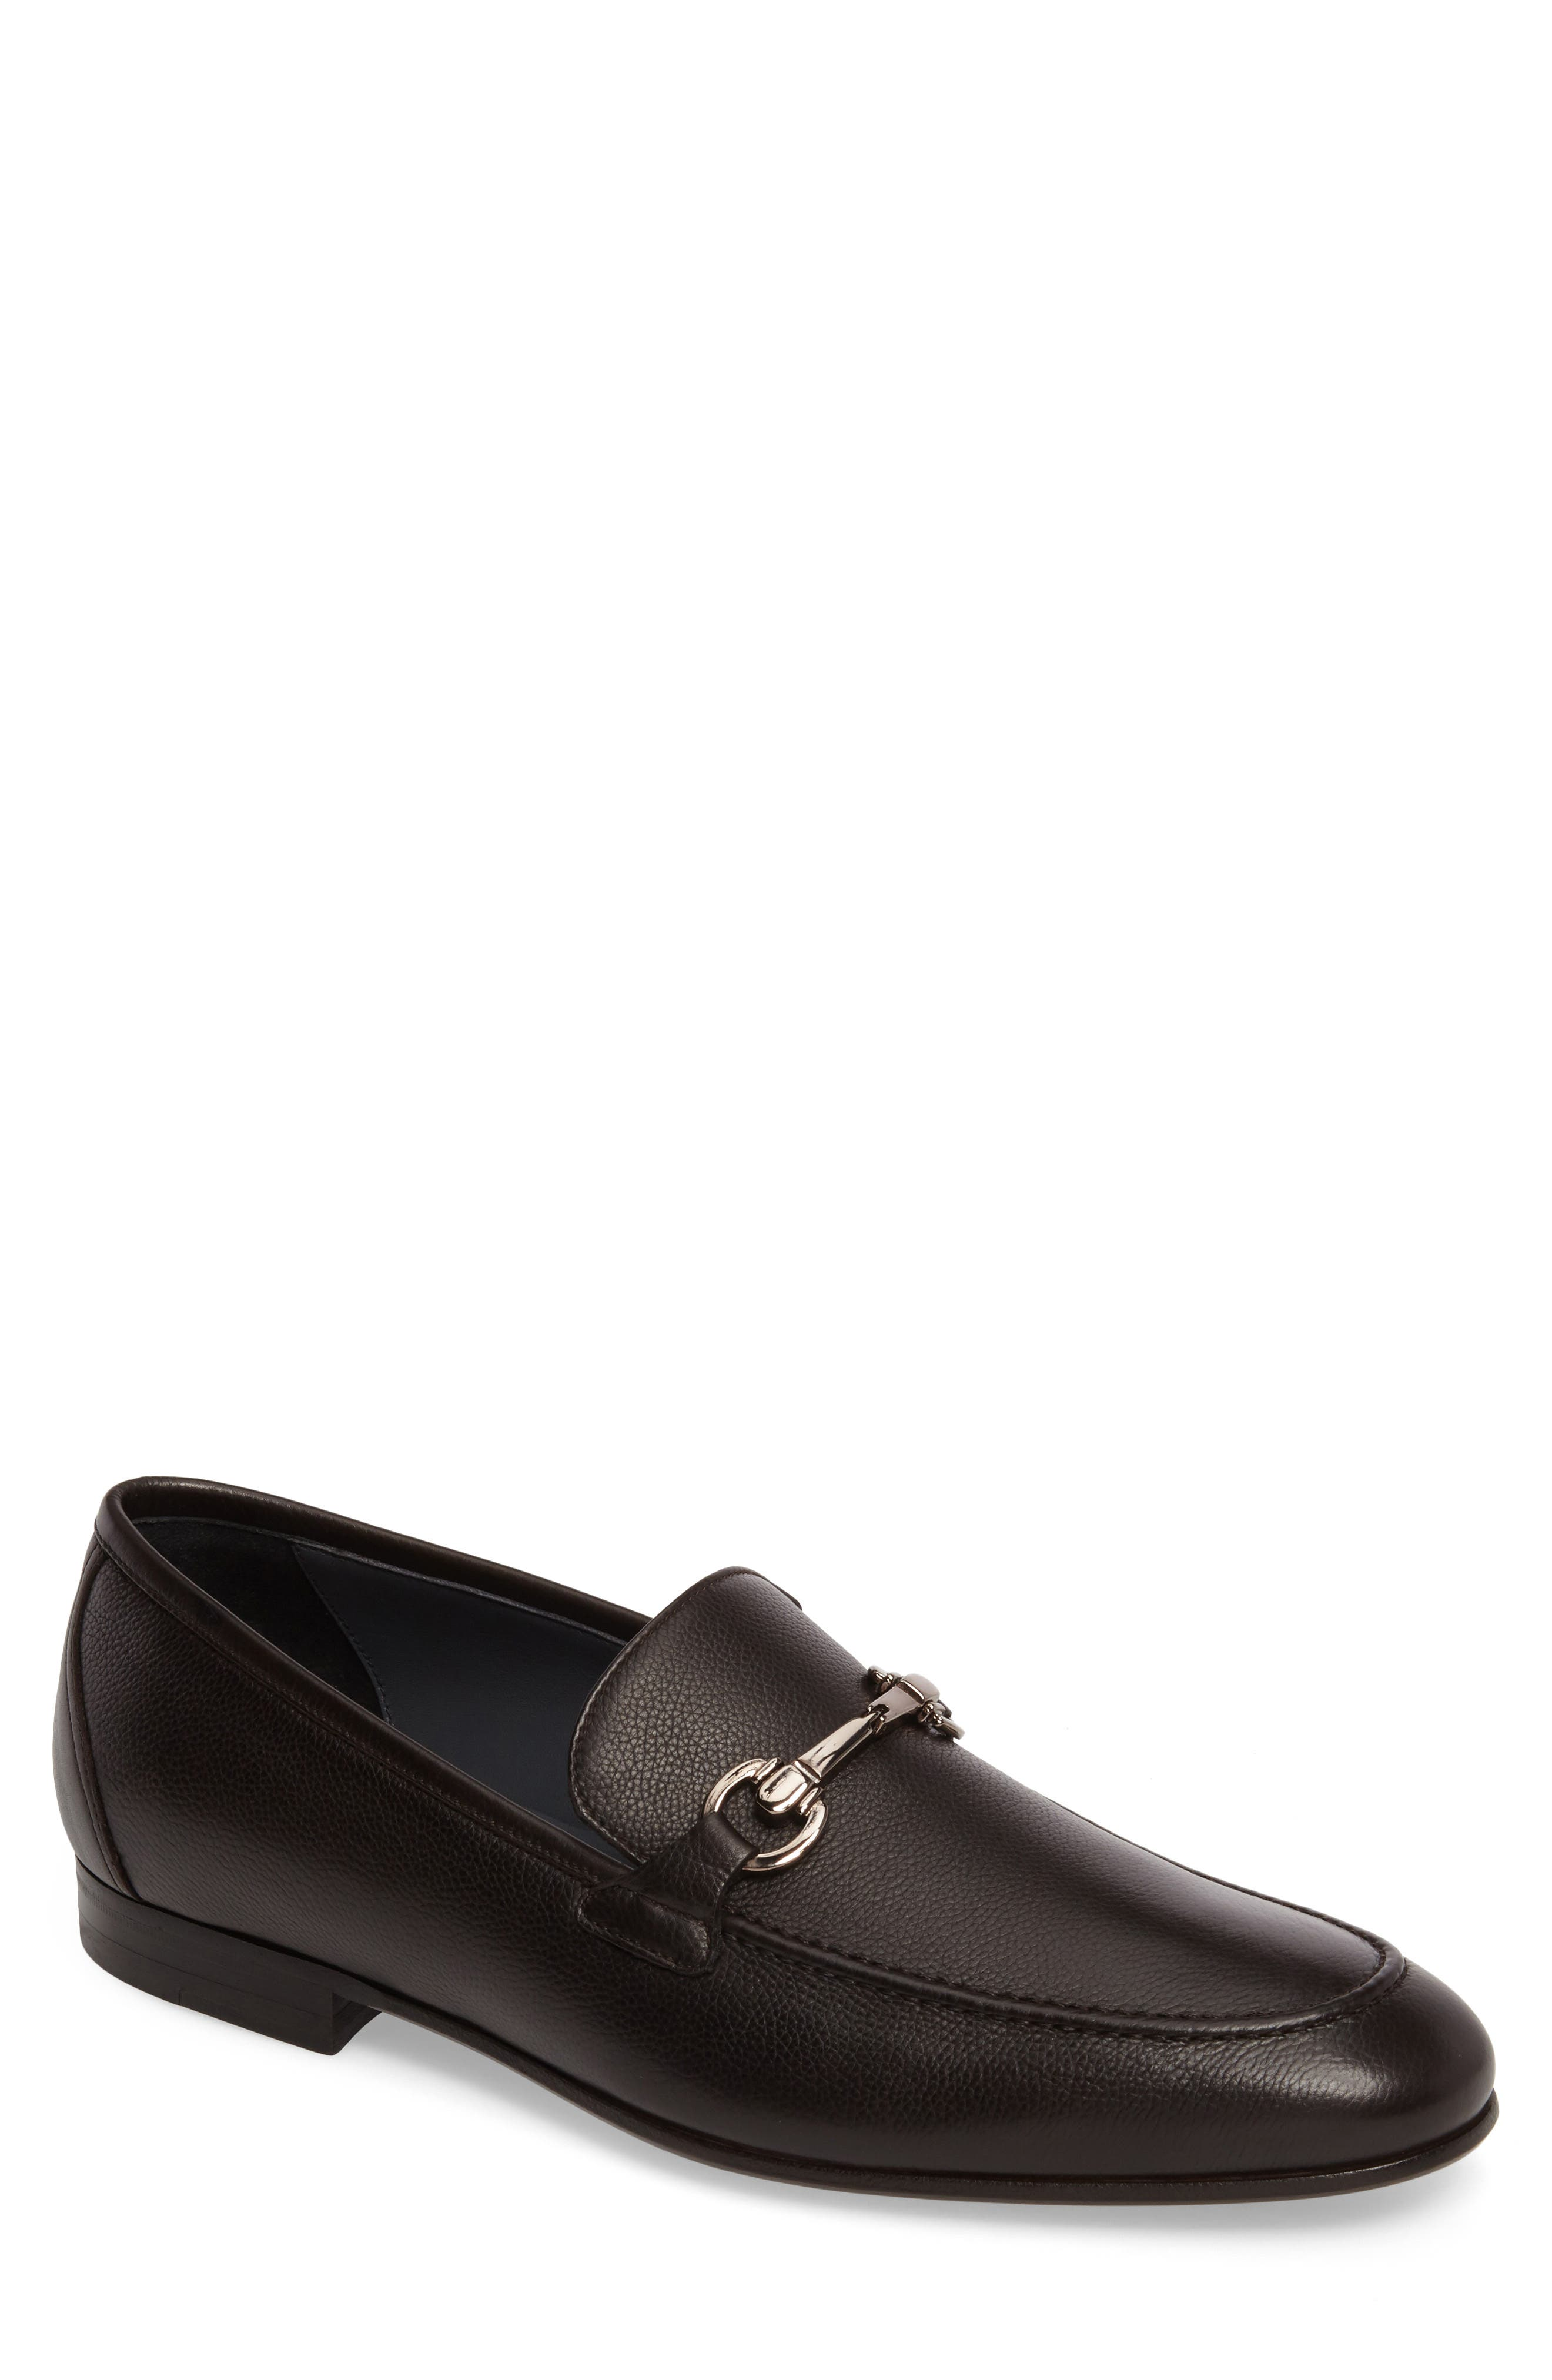 Brianza Bit Loafer,                             Main thumbnail 1, color,                             Dark Brown Leather